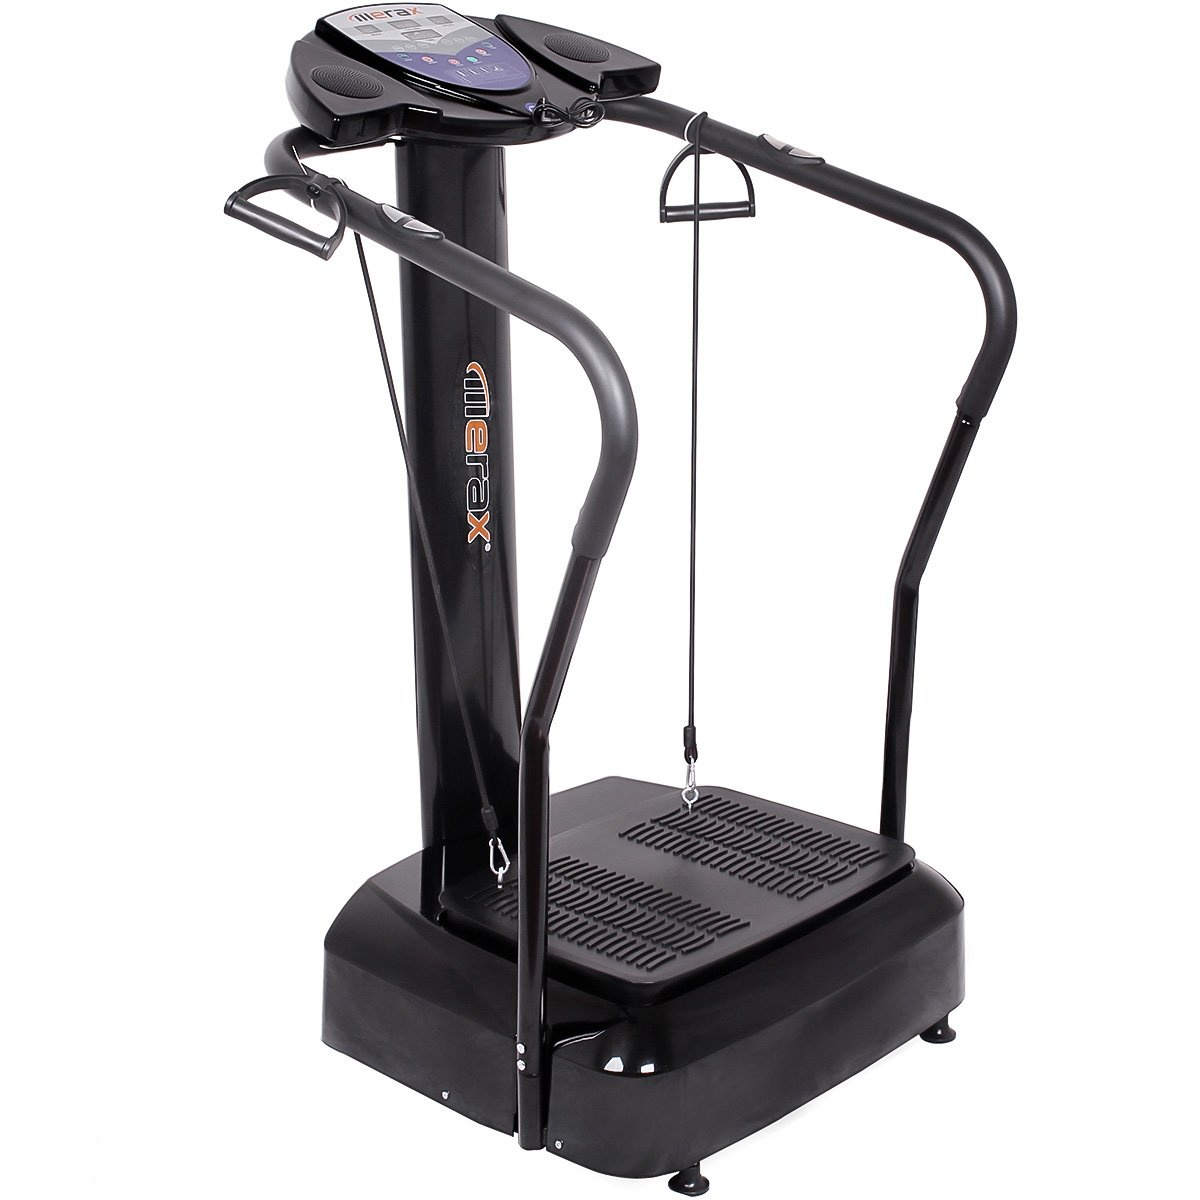 Merax 2000W Whole Body Crazy Fit Vibration Platform Fitness Machine withYoga Straps and MP3 Player by Merax